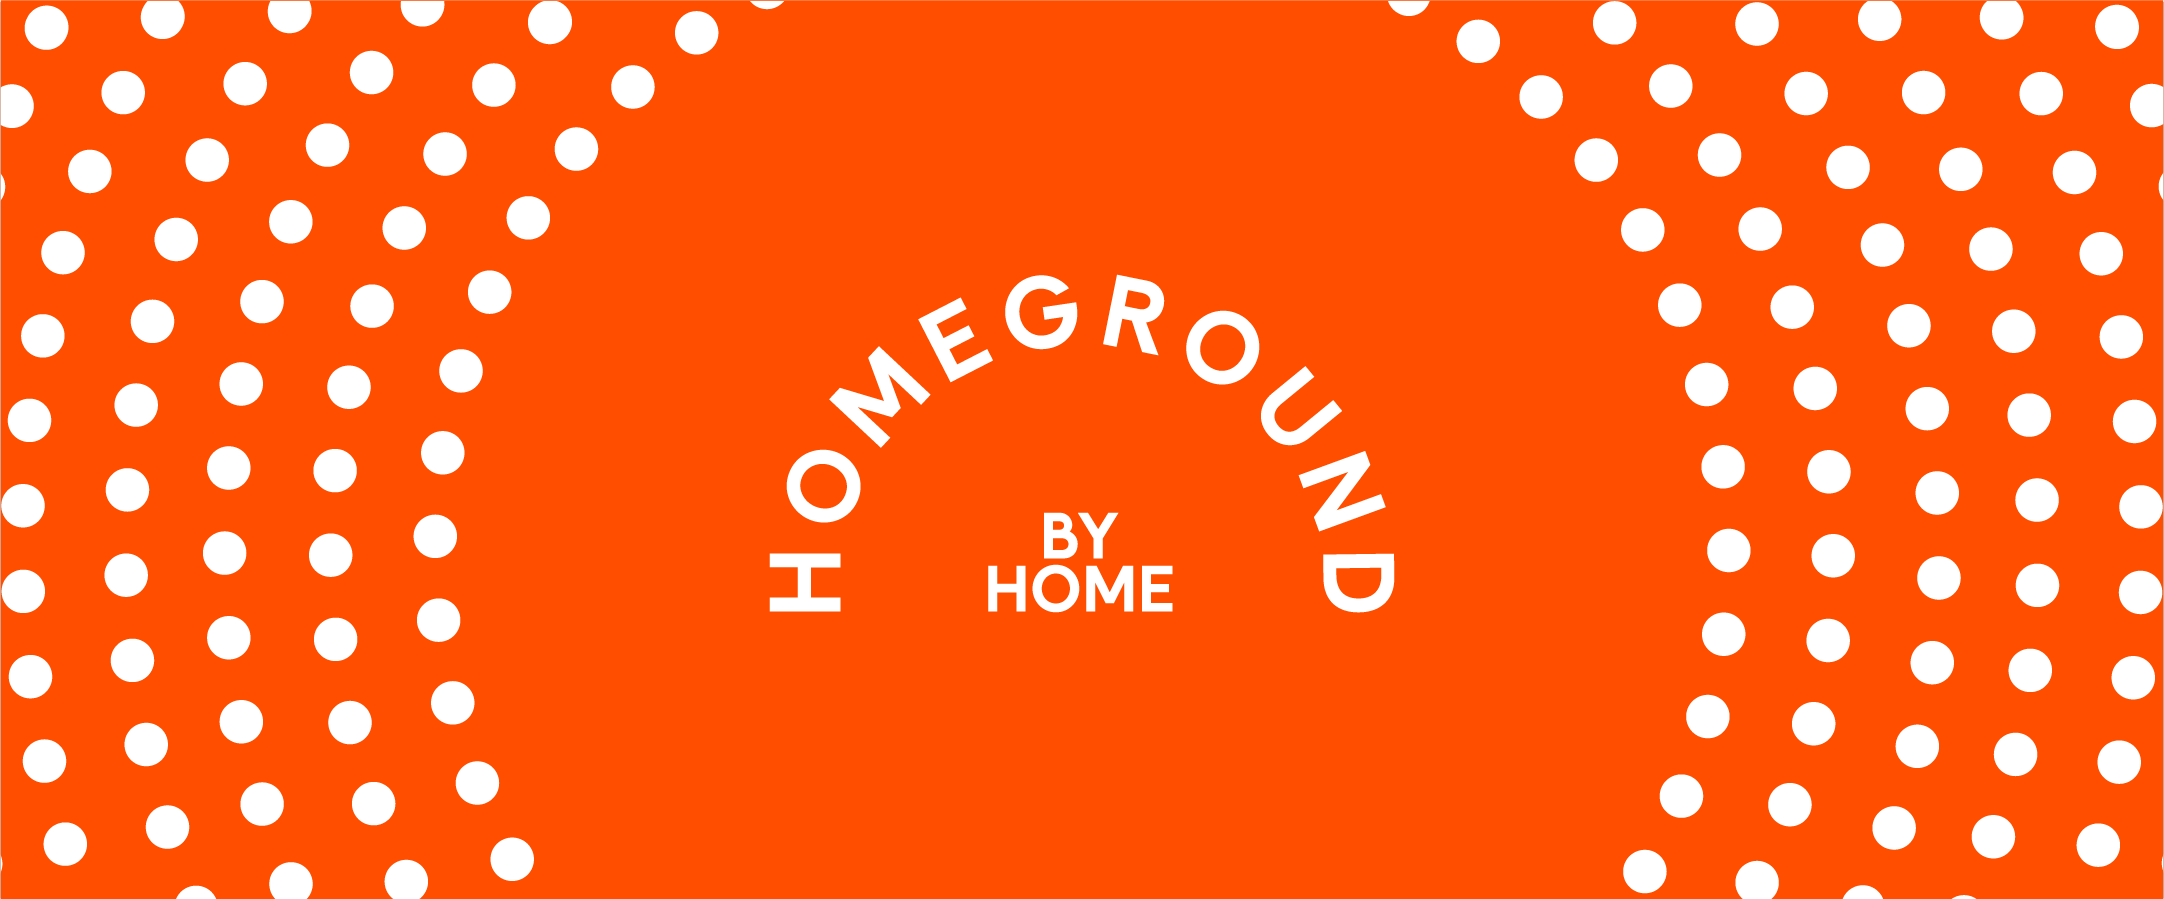 homeground-banner.png